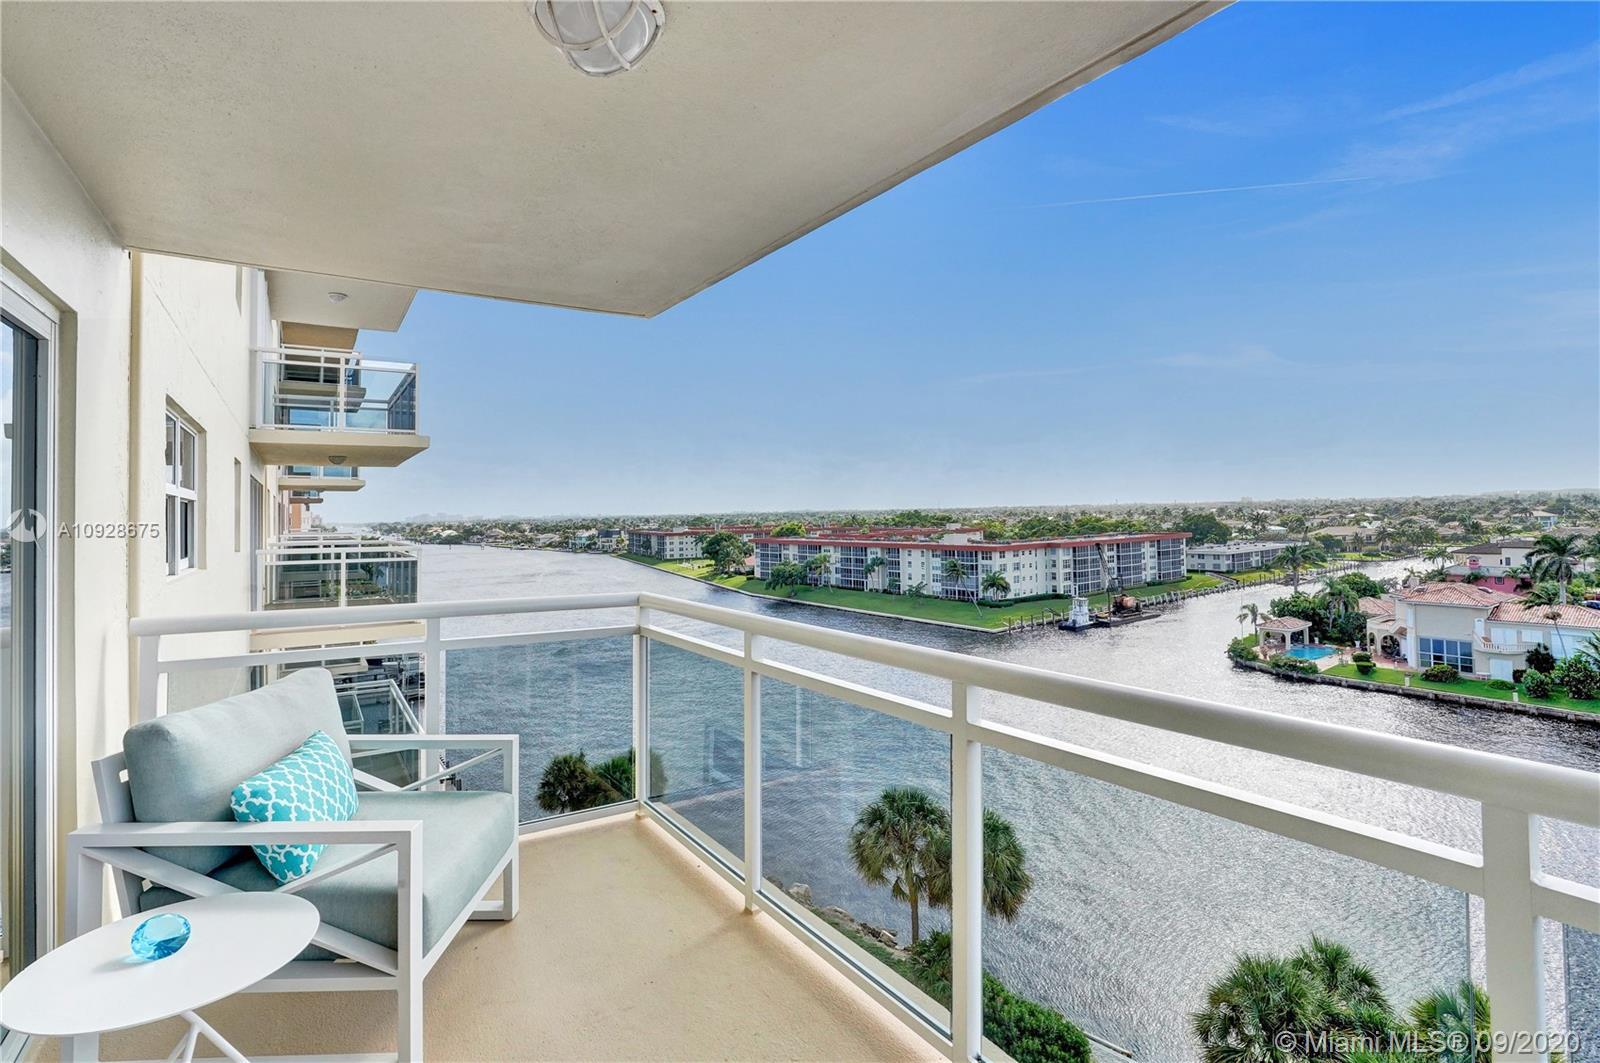 Hillsboro Beach is an upscale town with homes located between the Intracoastal Waterway and the Atla